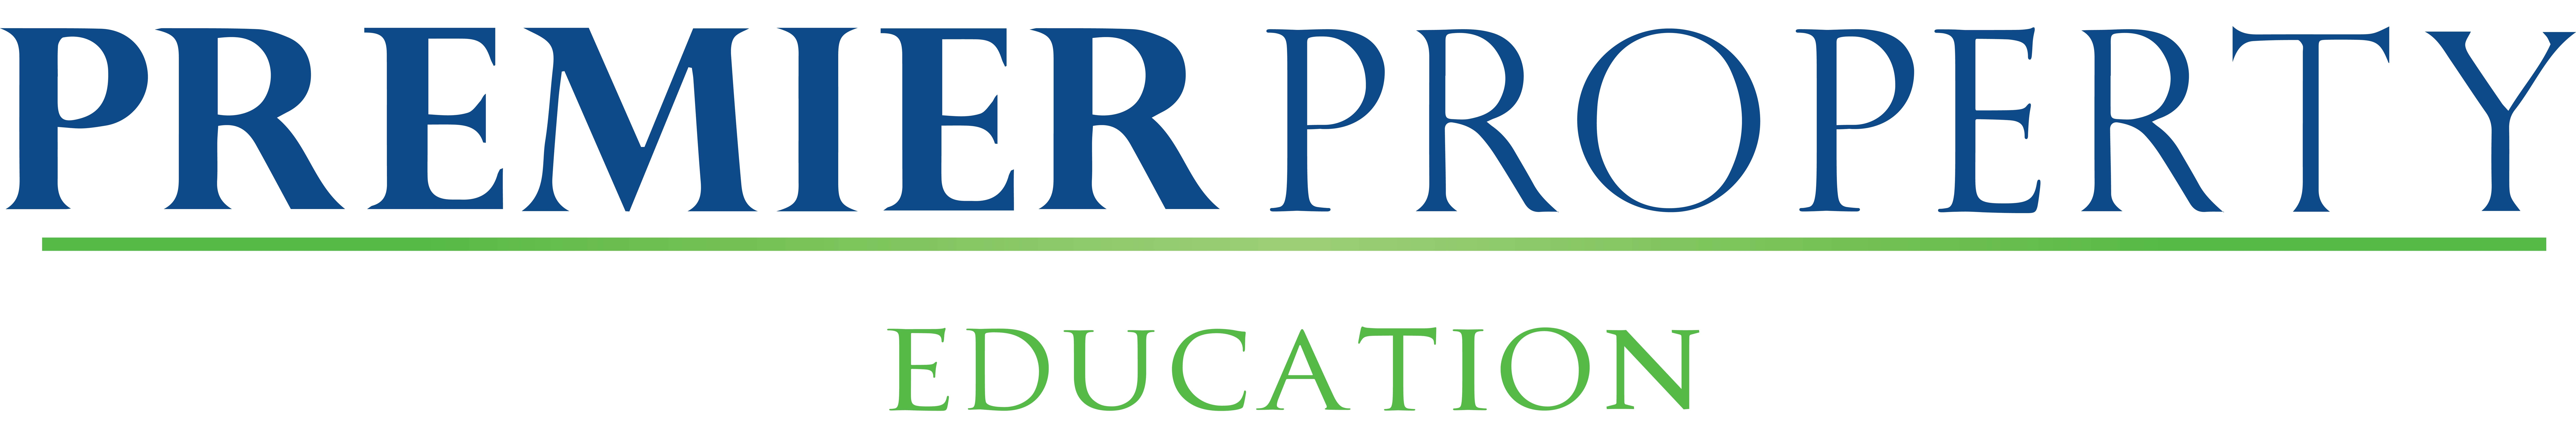 Premier Property Education